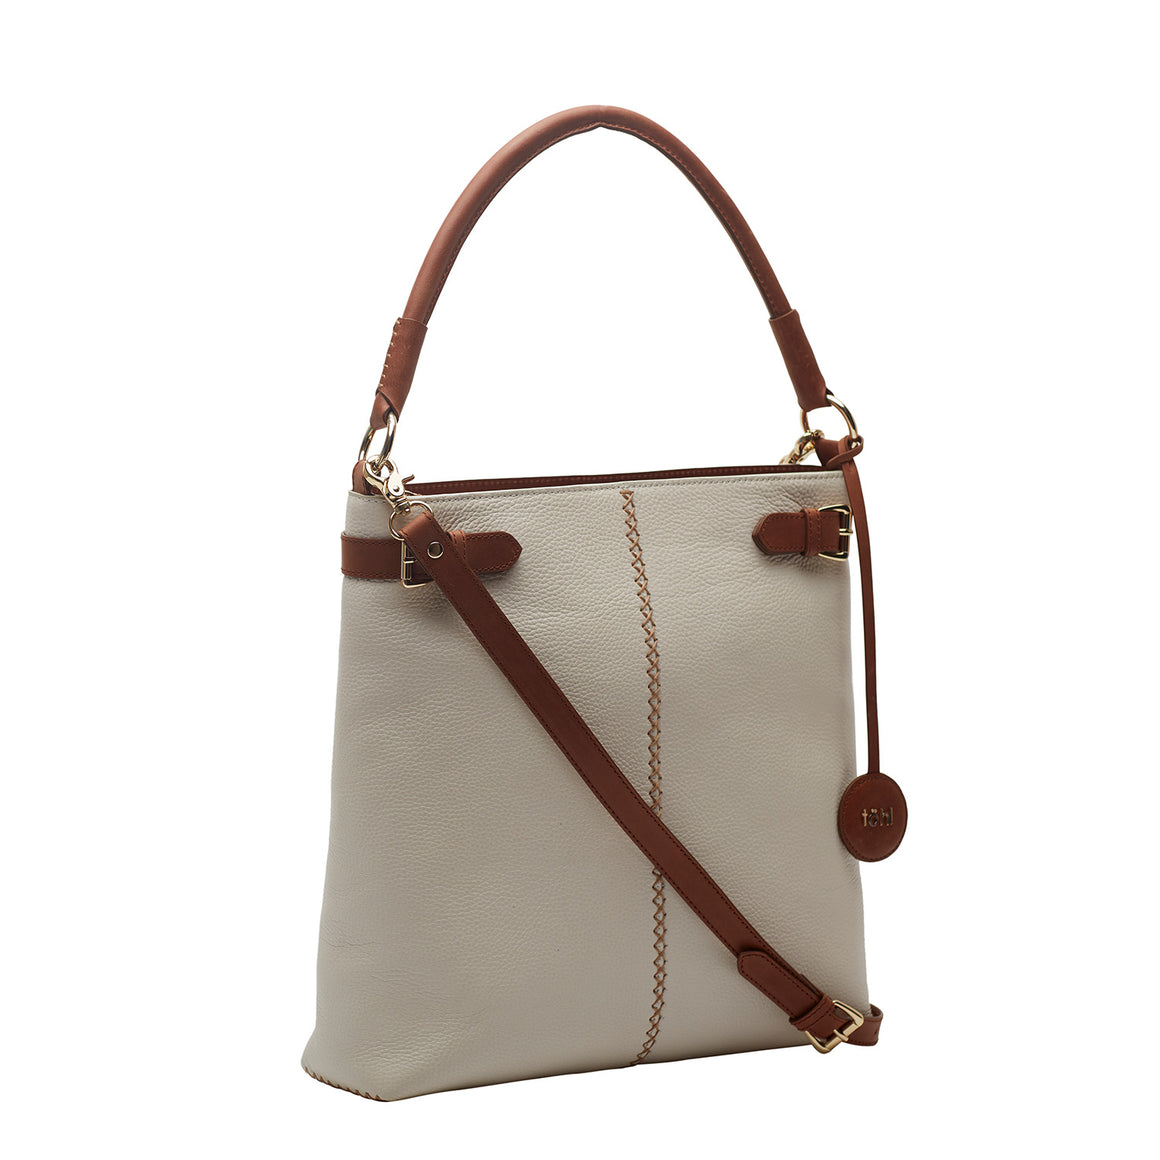 SG 0018 - TOHL WILLOW WOMEN'S SLING & CROSSBODY BAG - WHITE